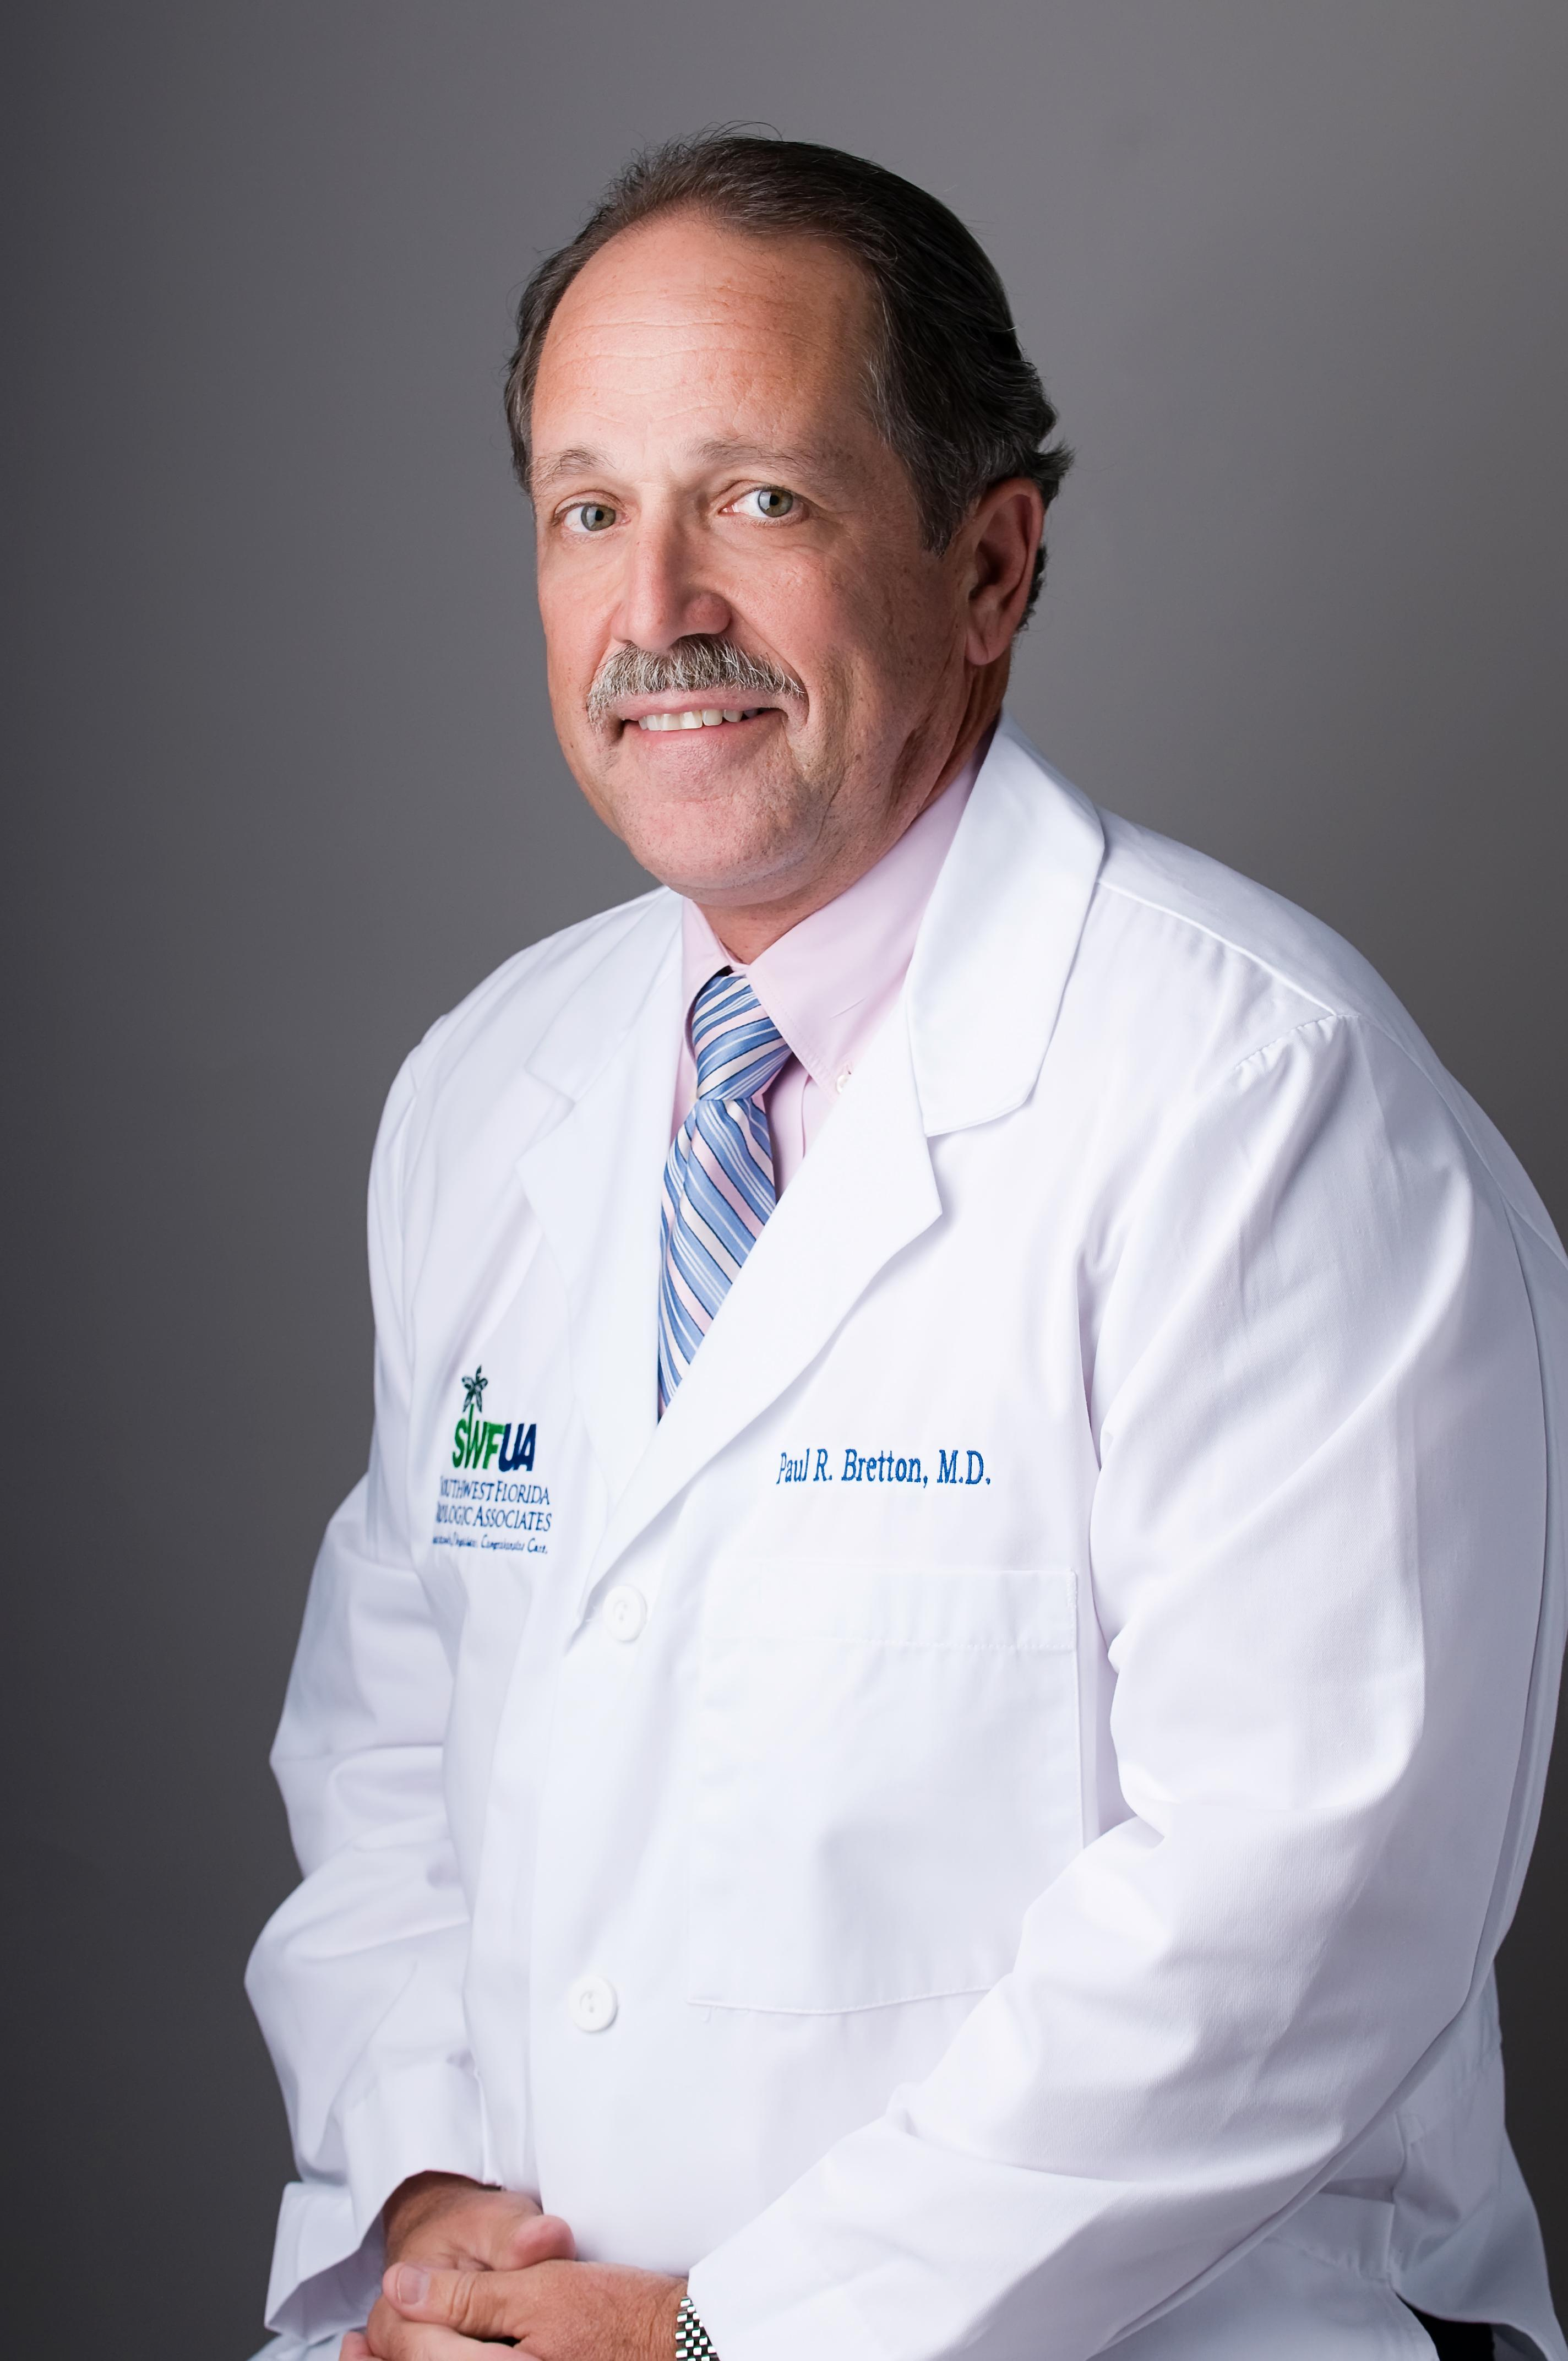 Paul R Bretton, MD